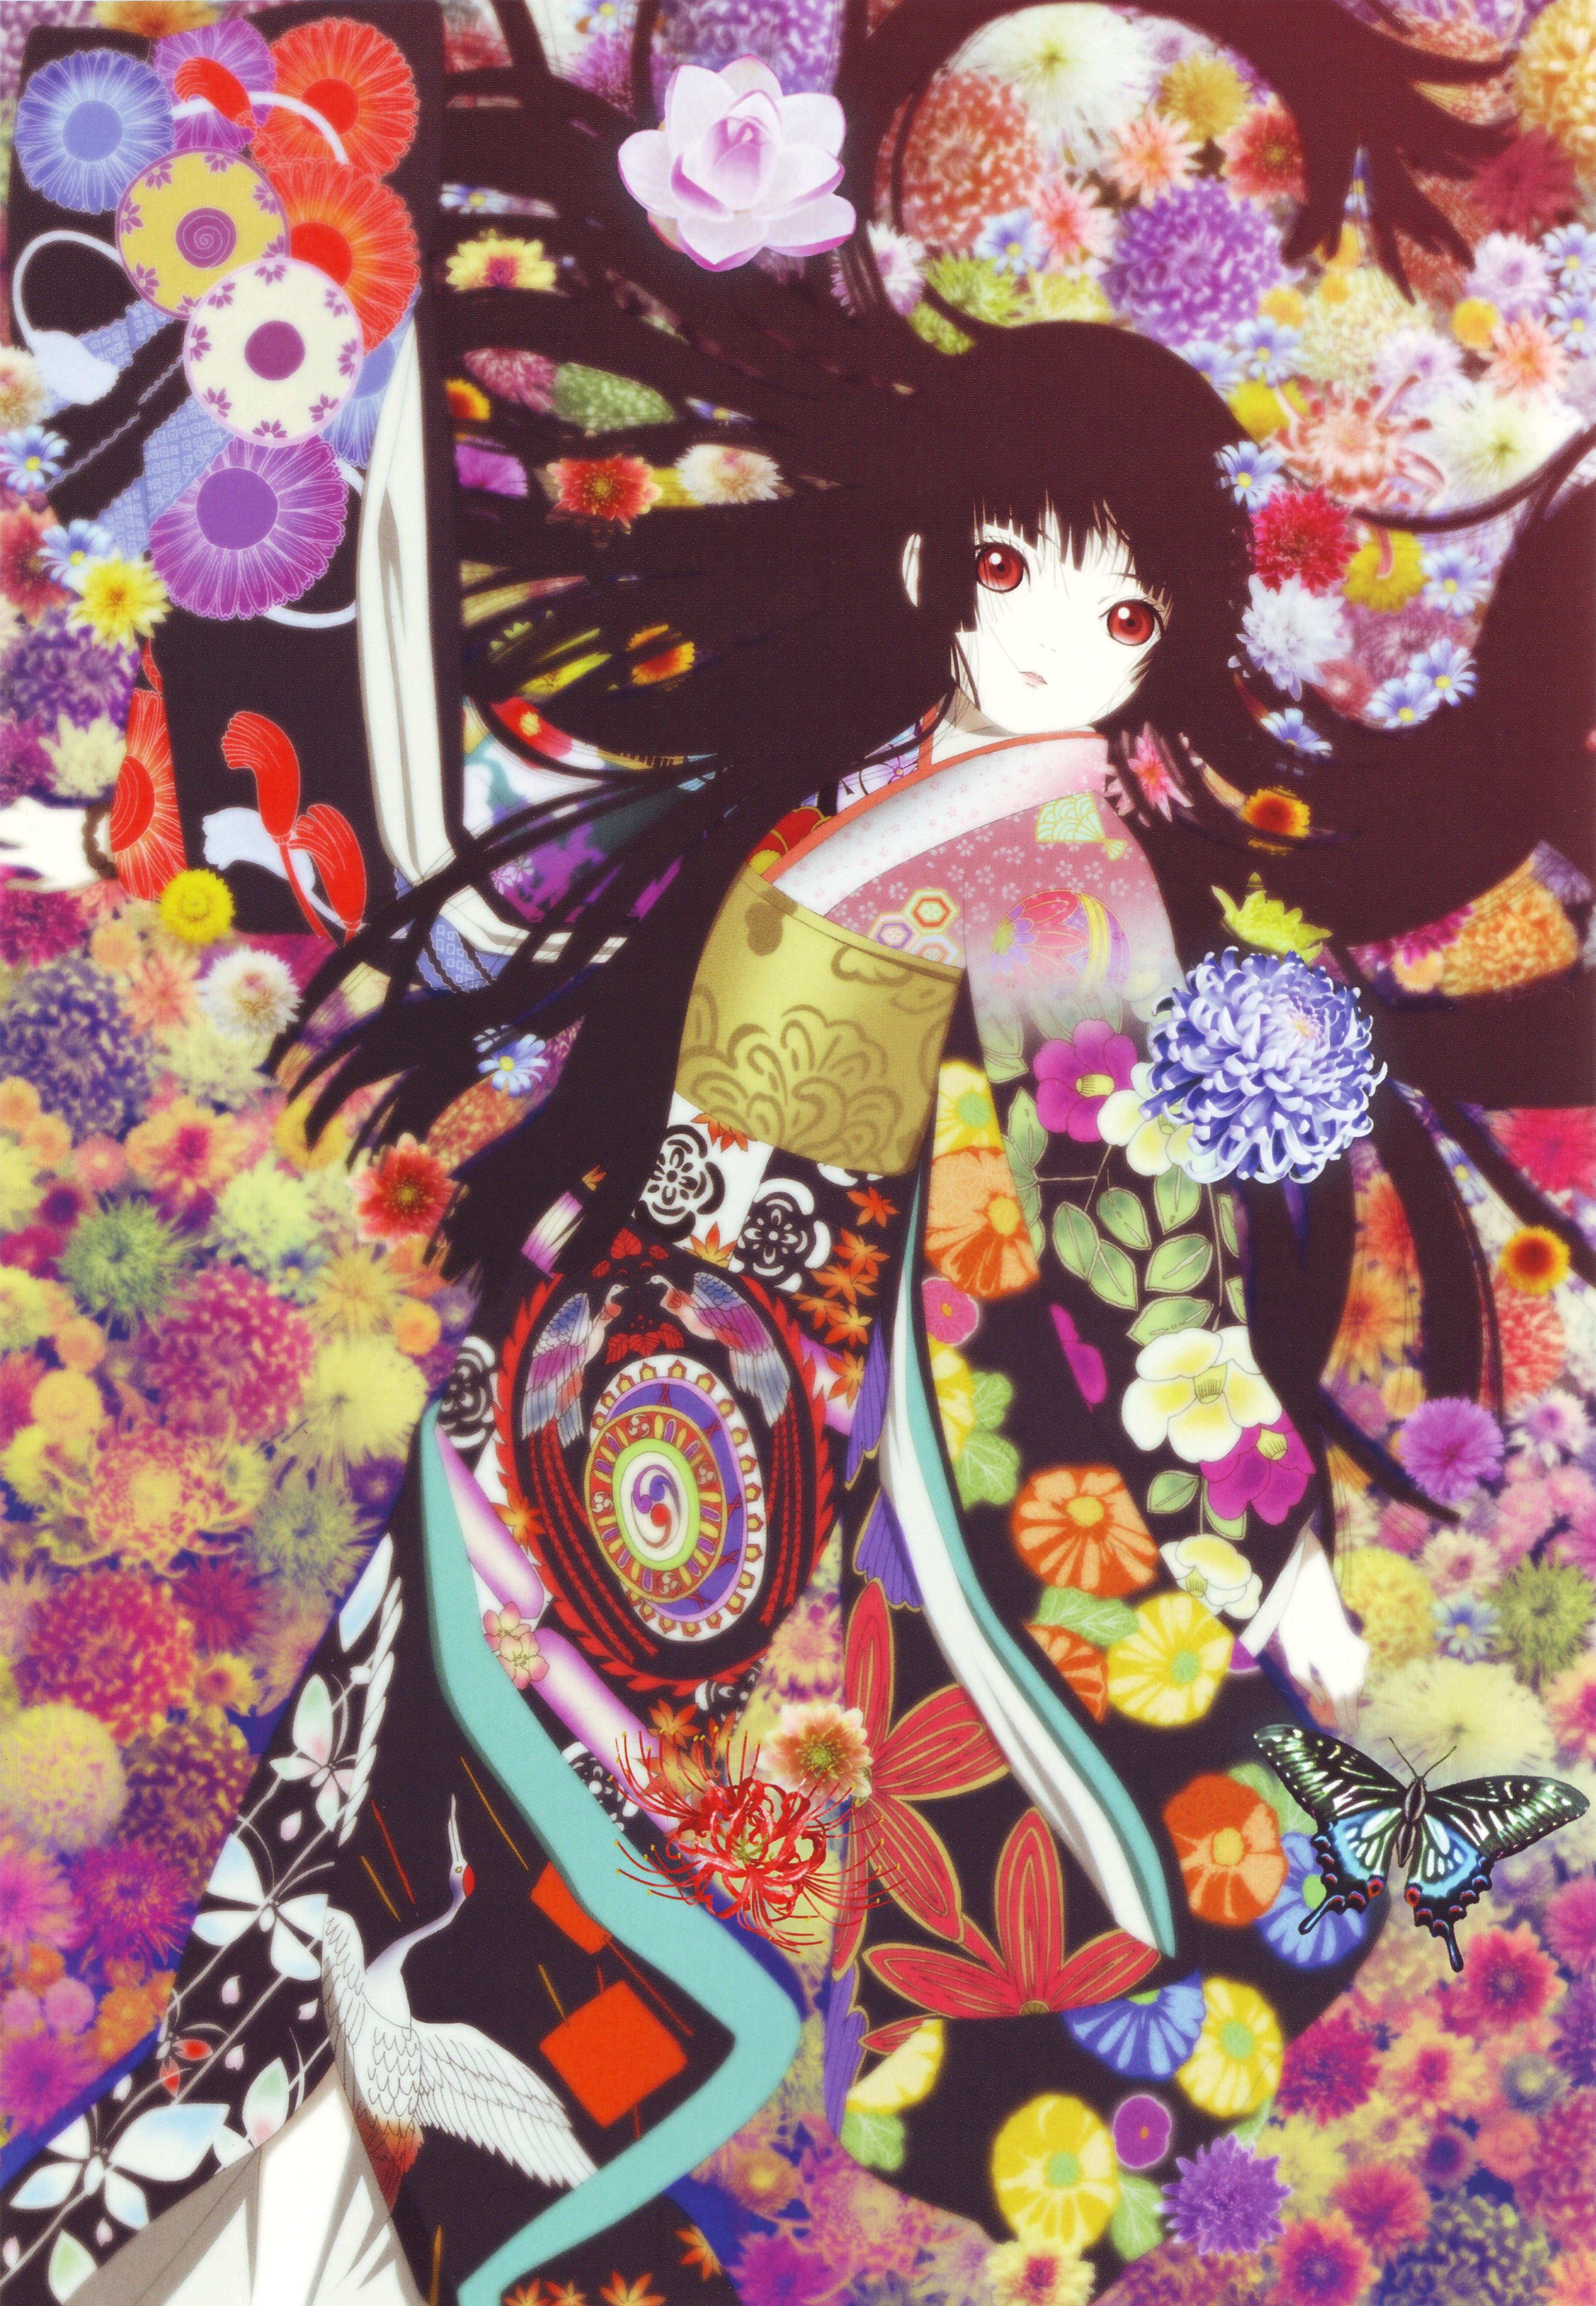 Jigoku Shoujo I Have A Crush On Her For The Rdcord She Is 400 Y O